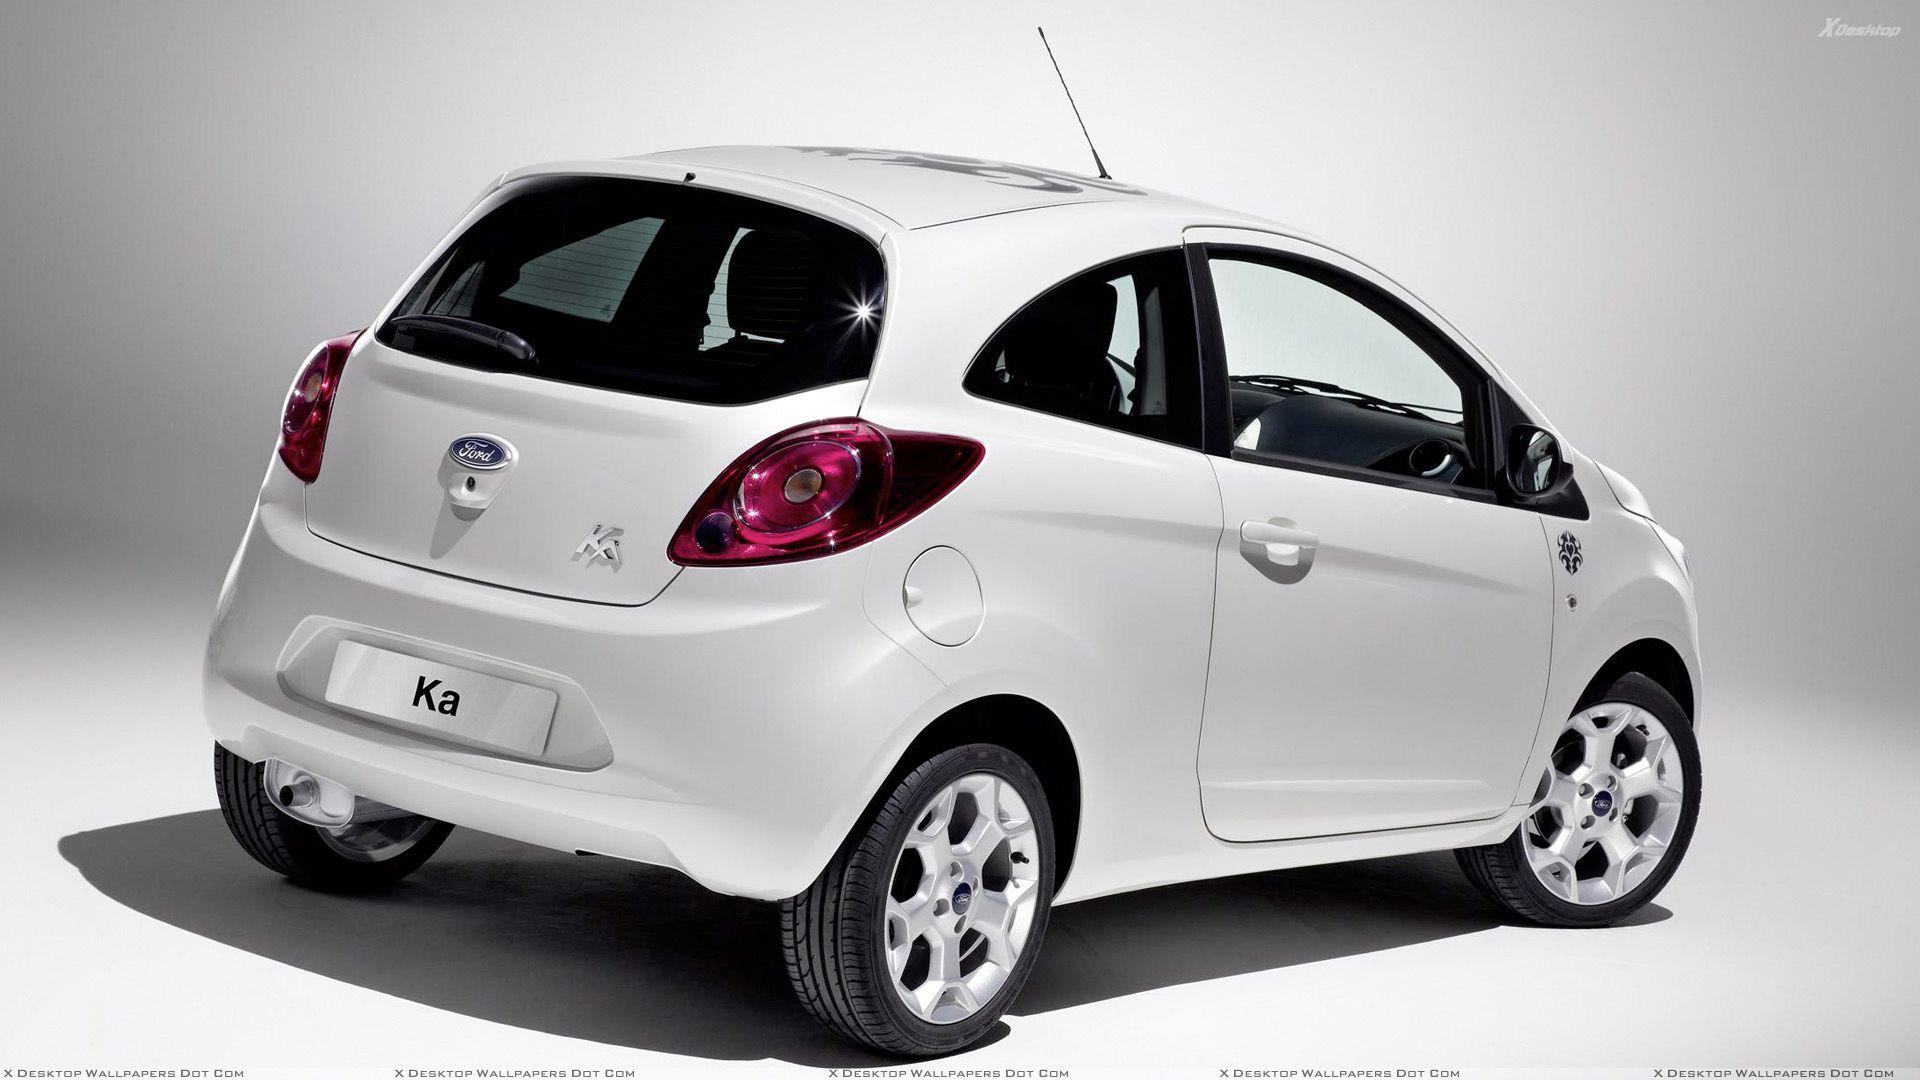 Ford Ka Wallpapers, Photos & Images in HD